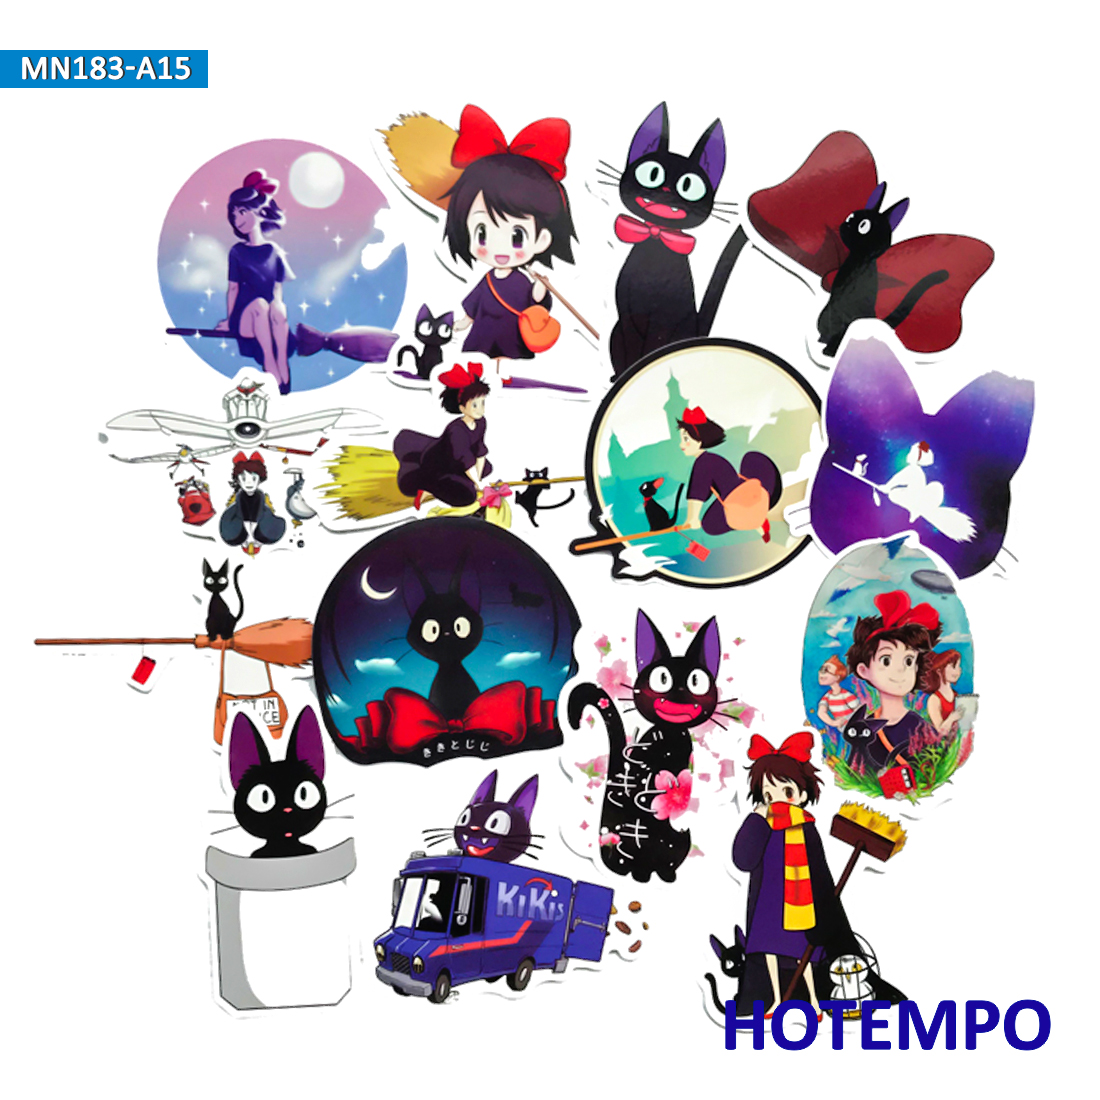 15pcs Kiki's Delivery Service Stickers For Girl Children Kids DIY Letter Diary Scrapbooking Stationery Pegatinas Decal Stickers